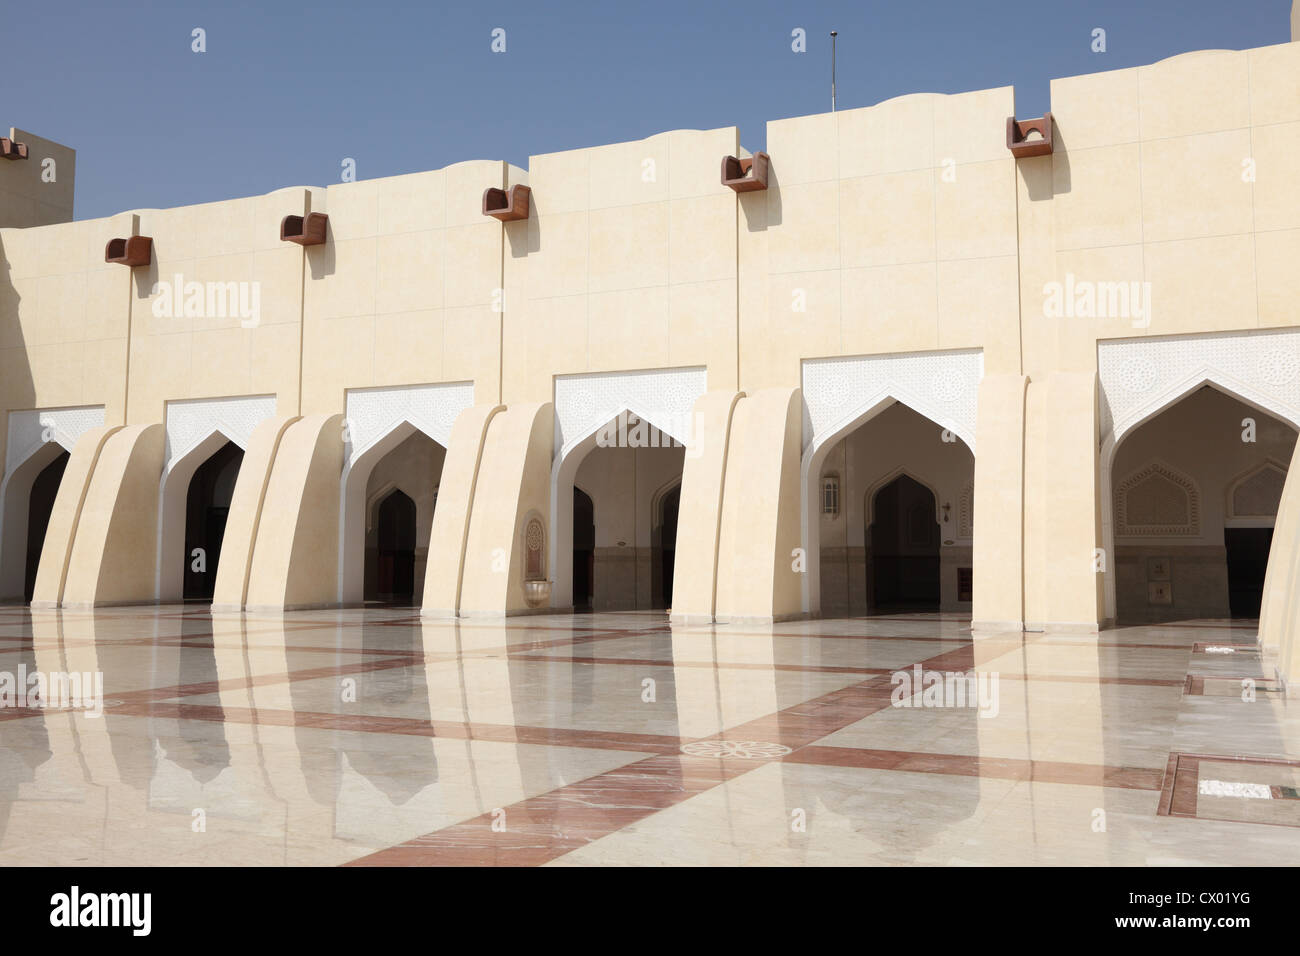 The Qatar State Grand Mosque in Doha, Middle East Stock Photo